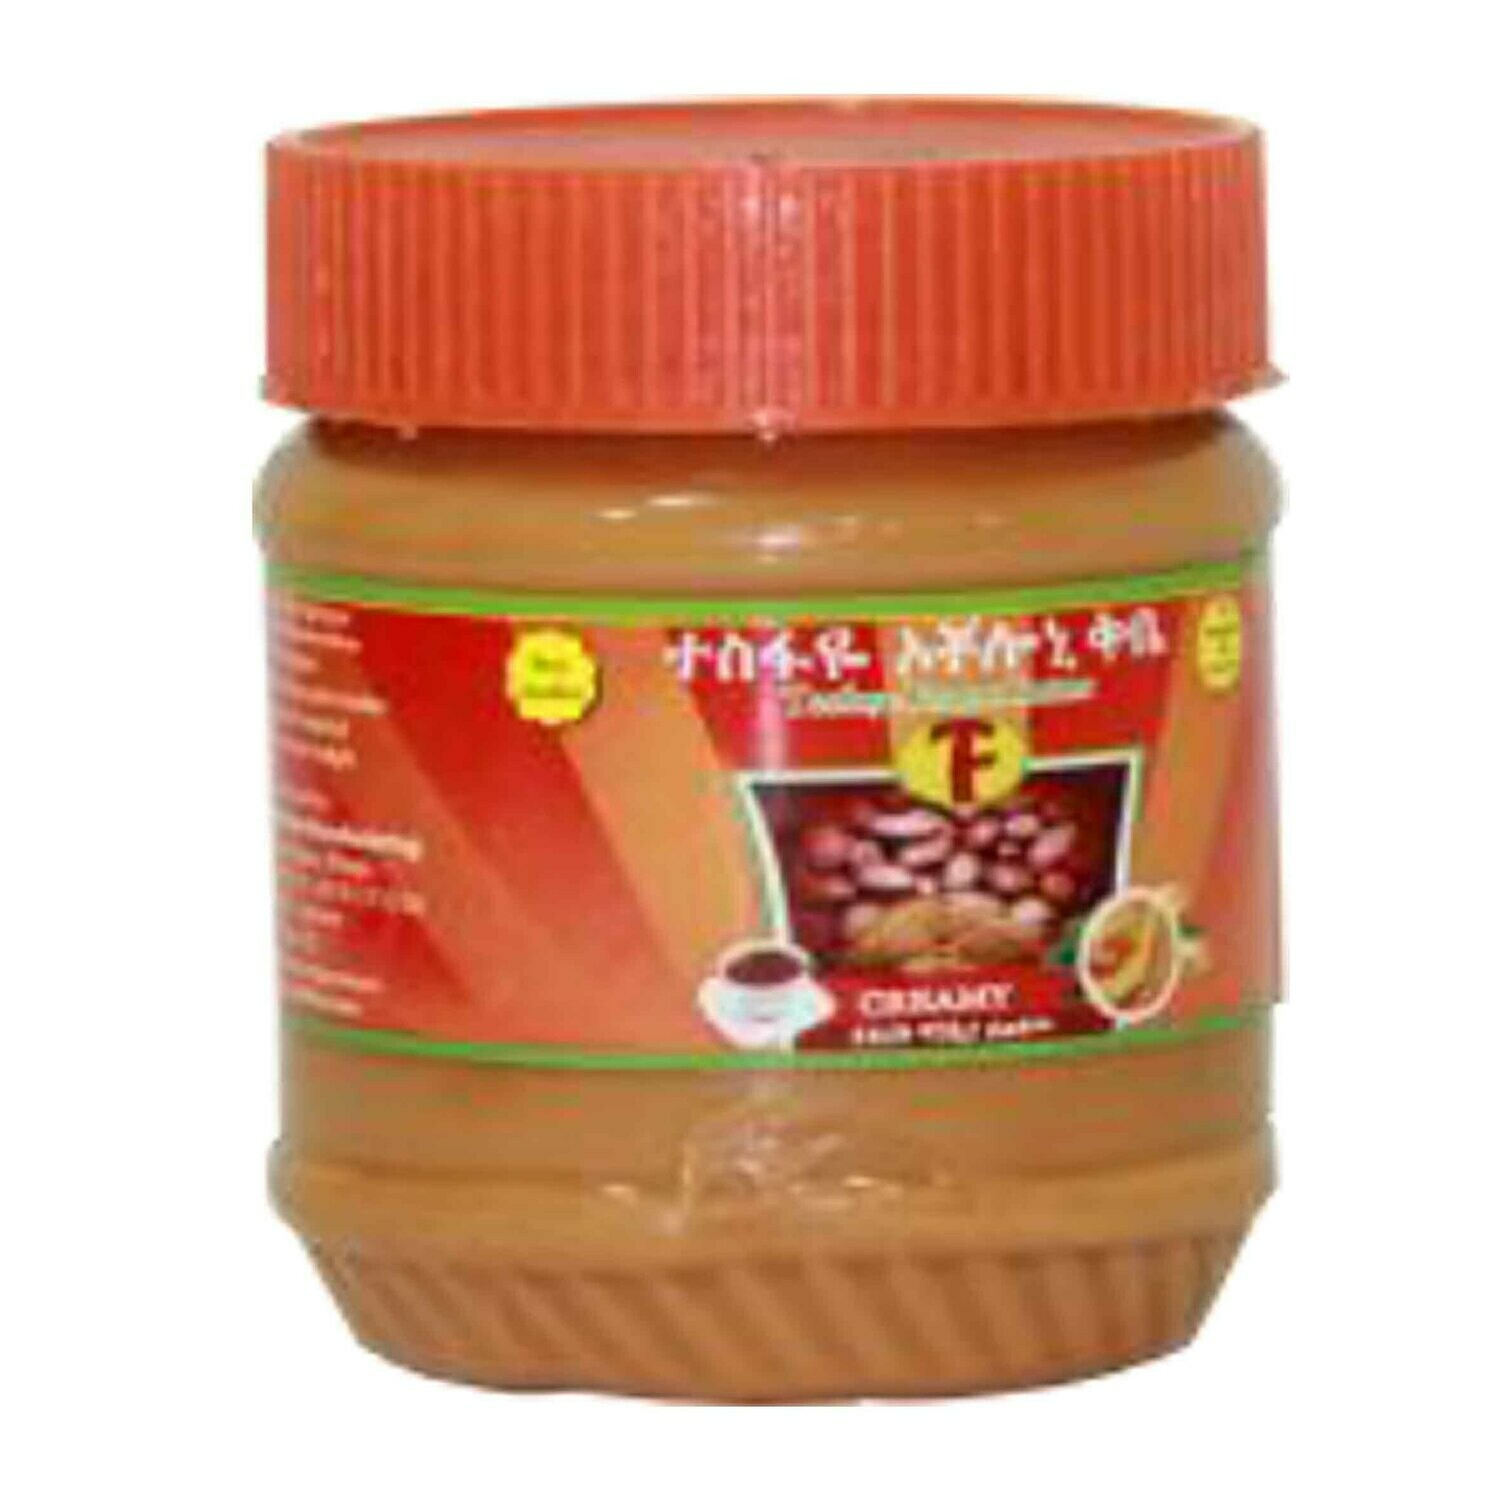 Tesfaye Peanut Butter (Ethiopia Only)